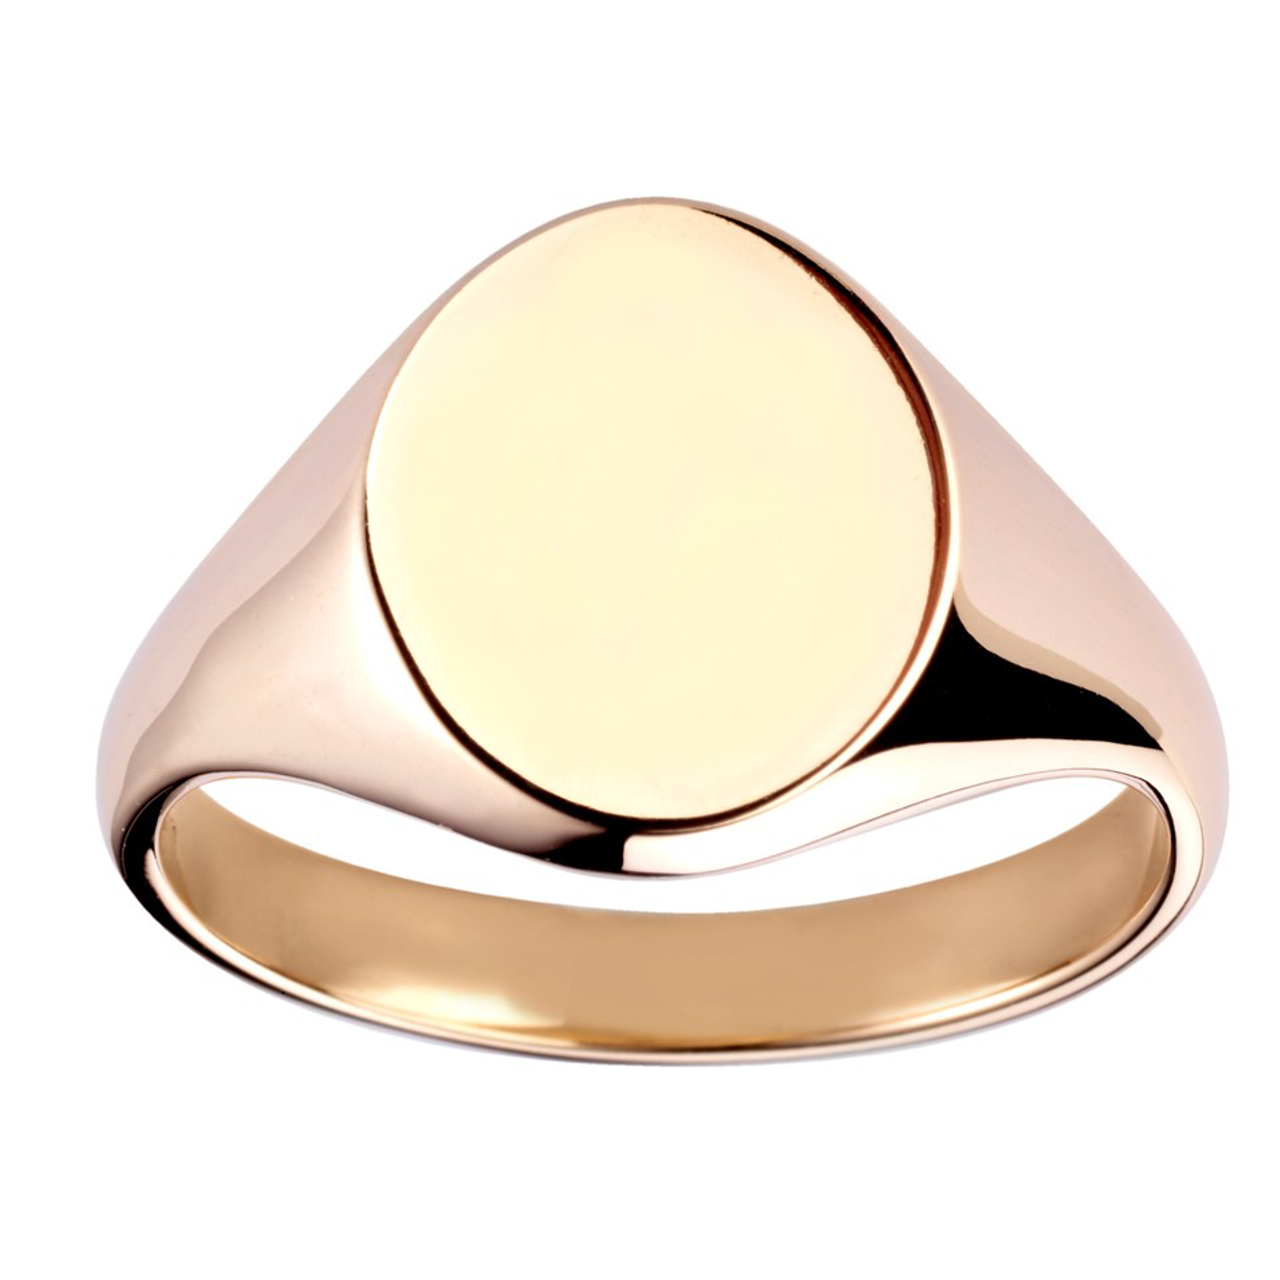 9ct Yellow Gold 13x11mm Oval Signet Ring